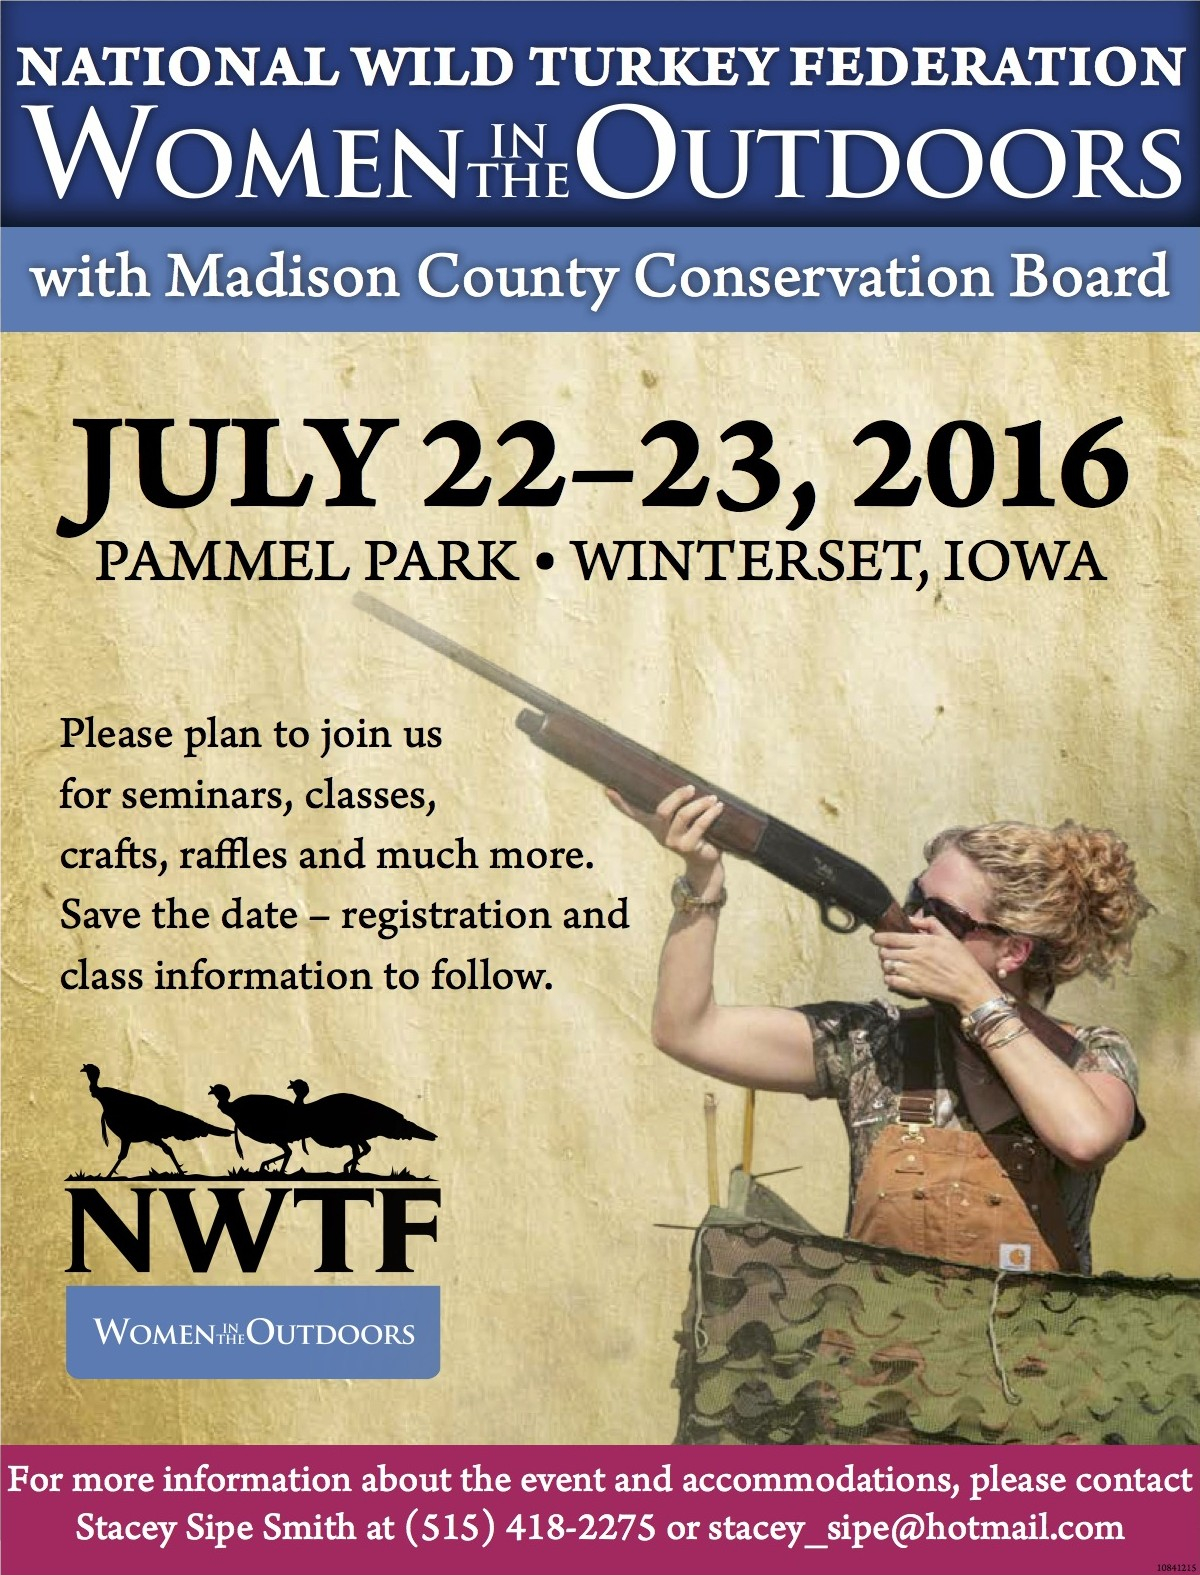 Women in the Outdoors event Save the Date